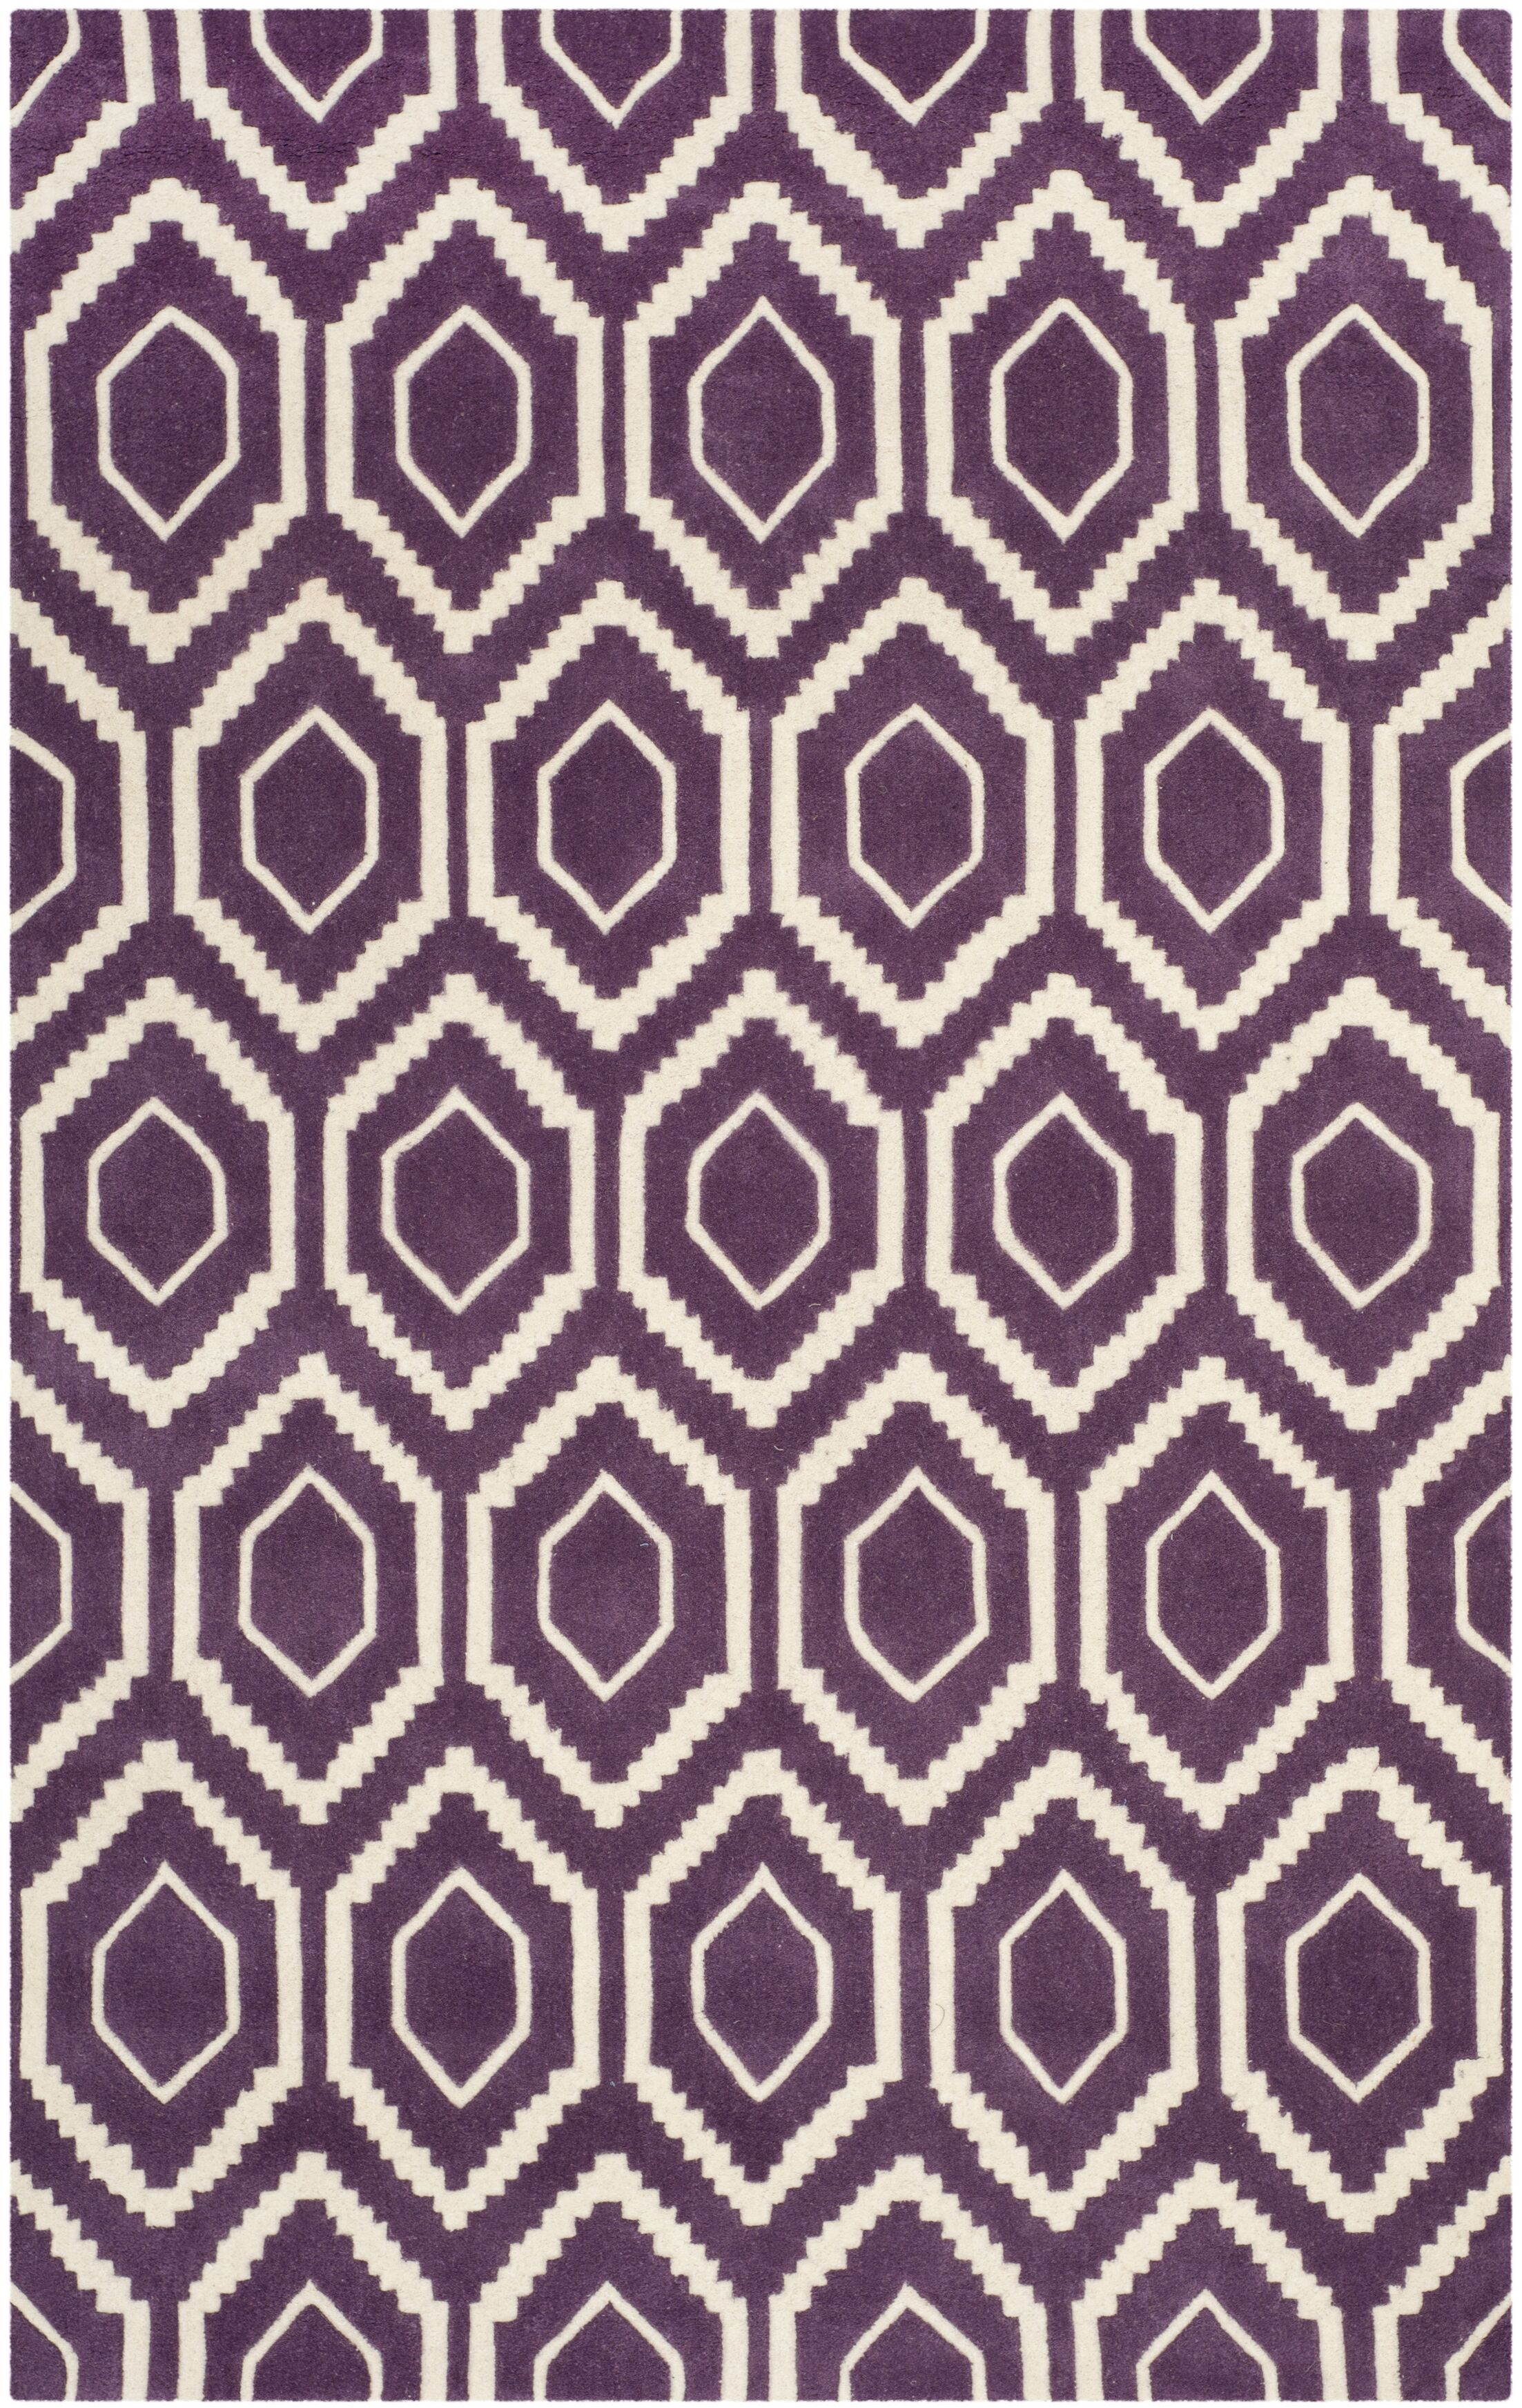 Wilkin Hand-Tufted Wool Purple/Ivory Area Rug Rug Size: Rectangle 5' x 8'